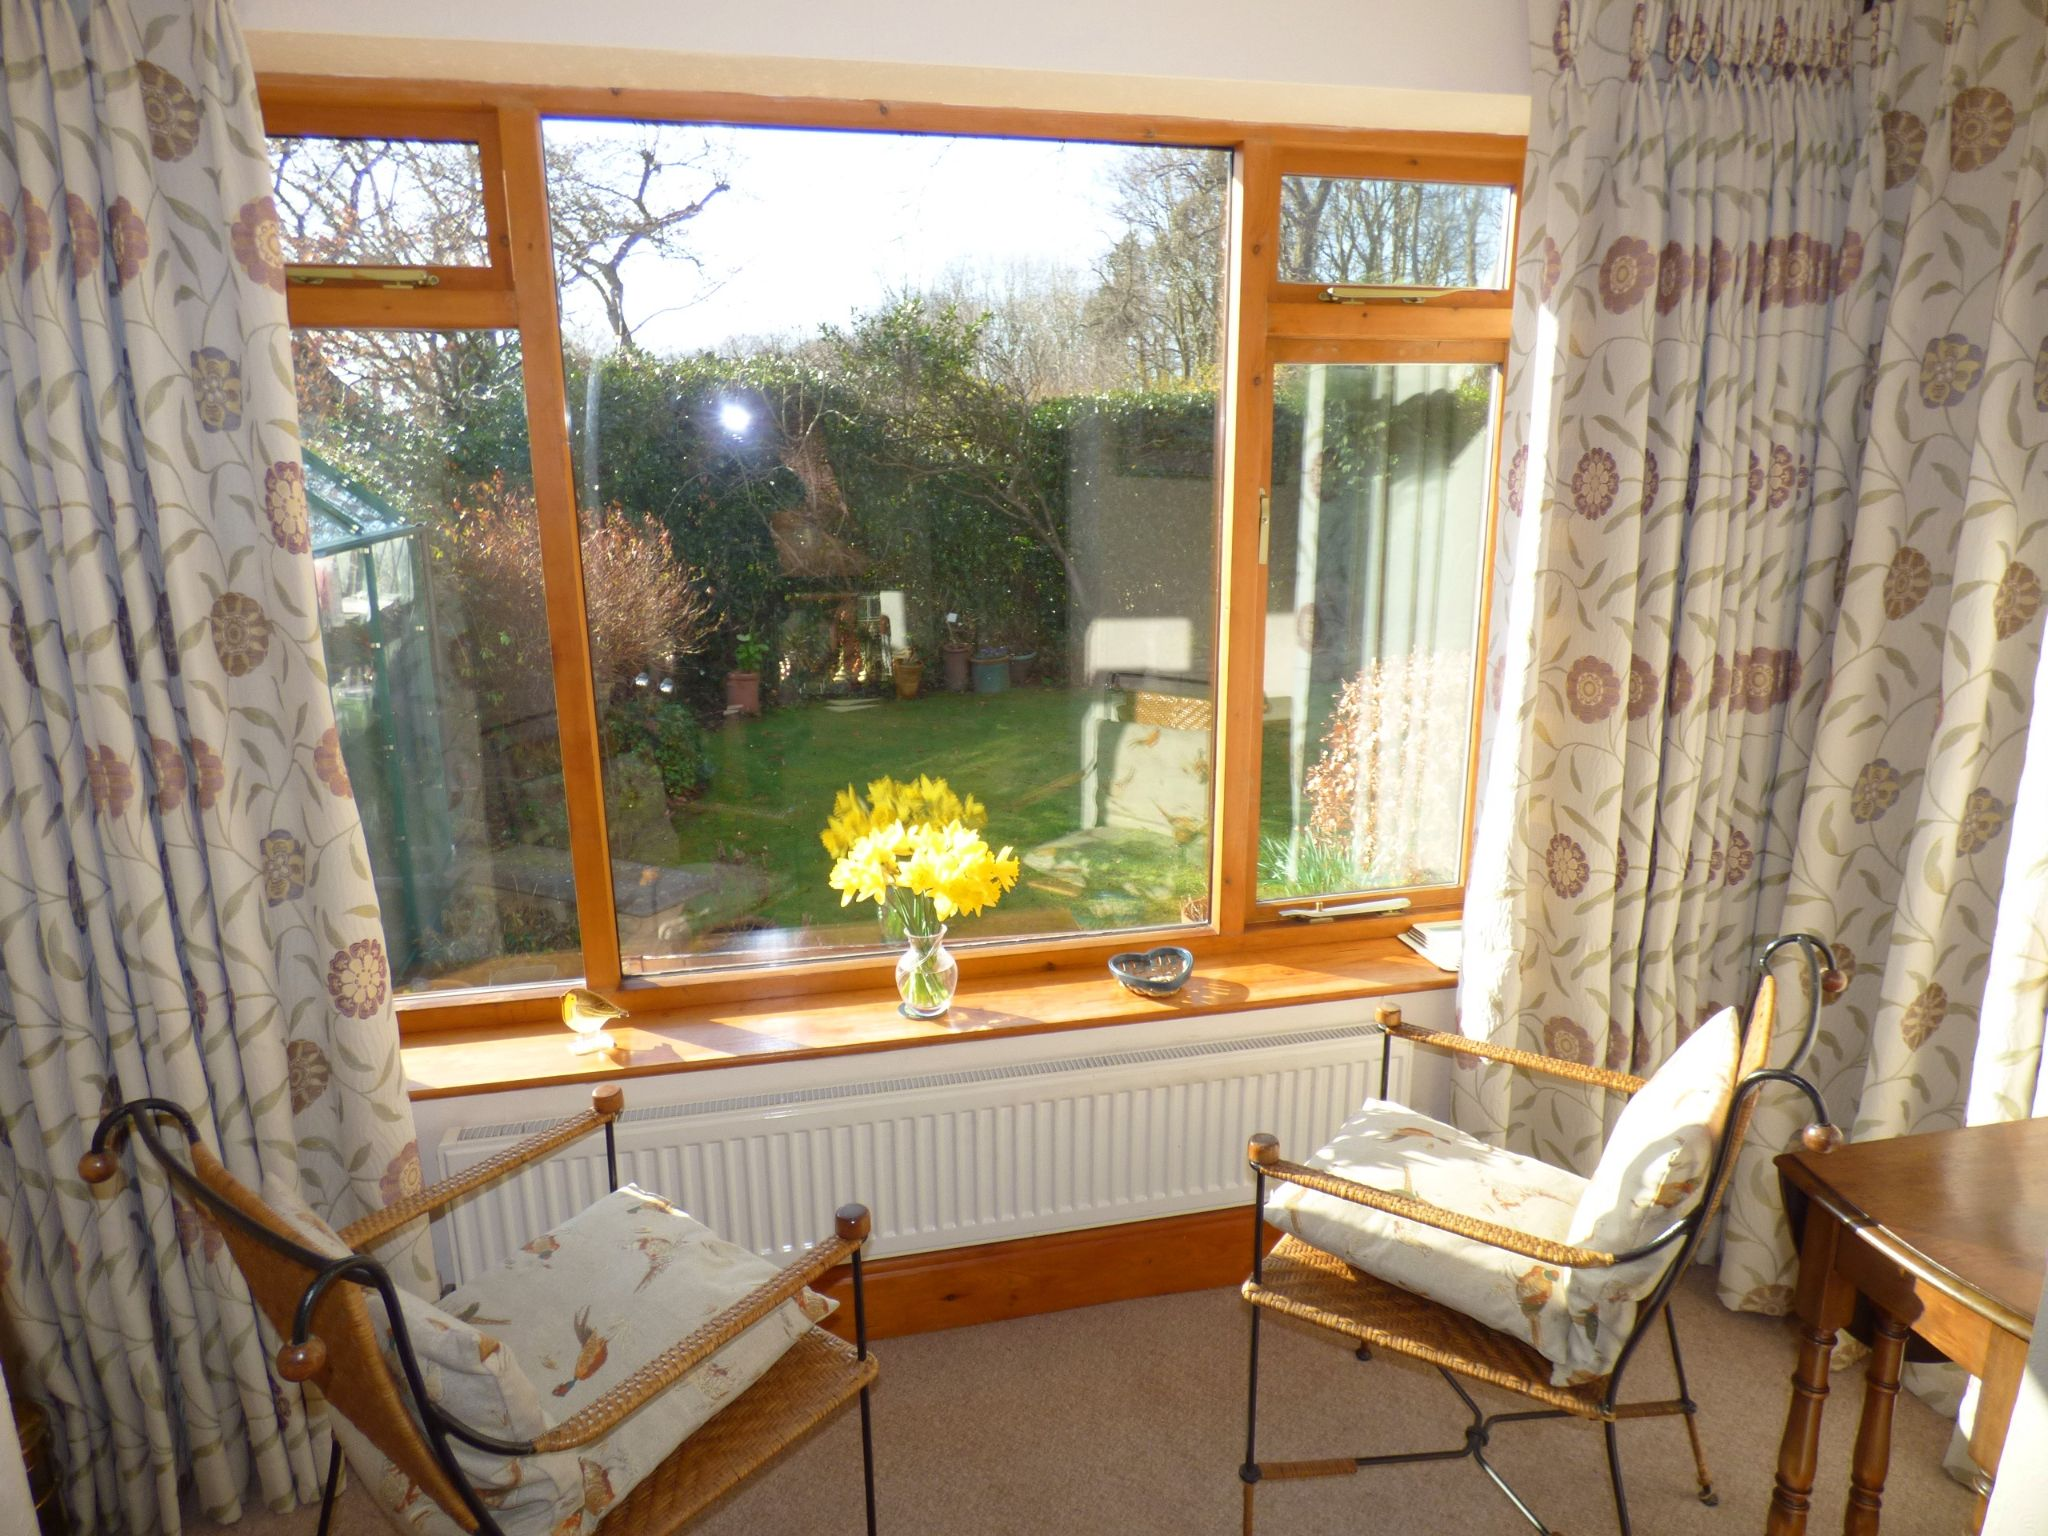 3 Bedroom Detached House For Sale - Sun Room